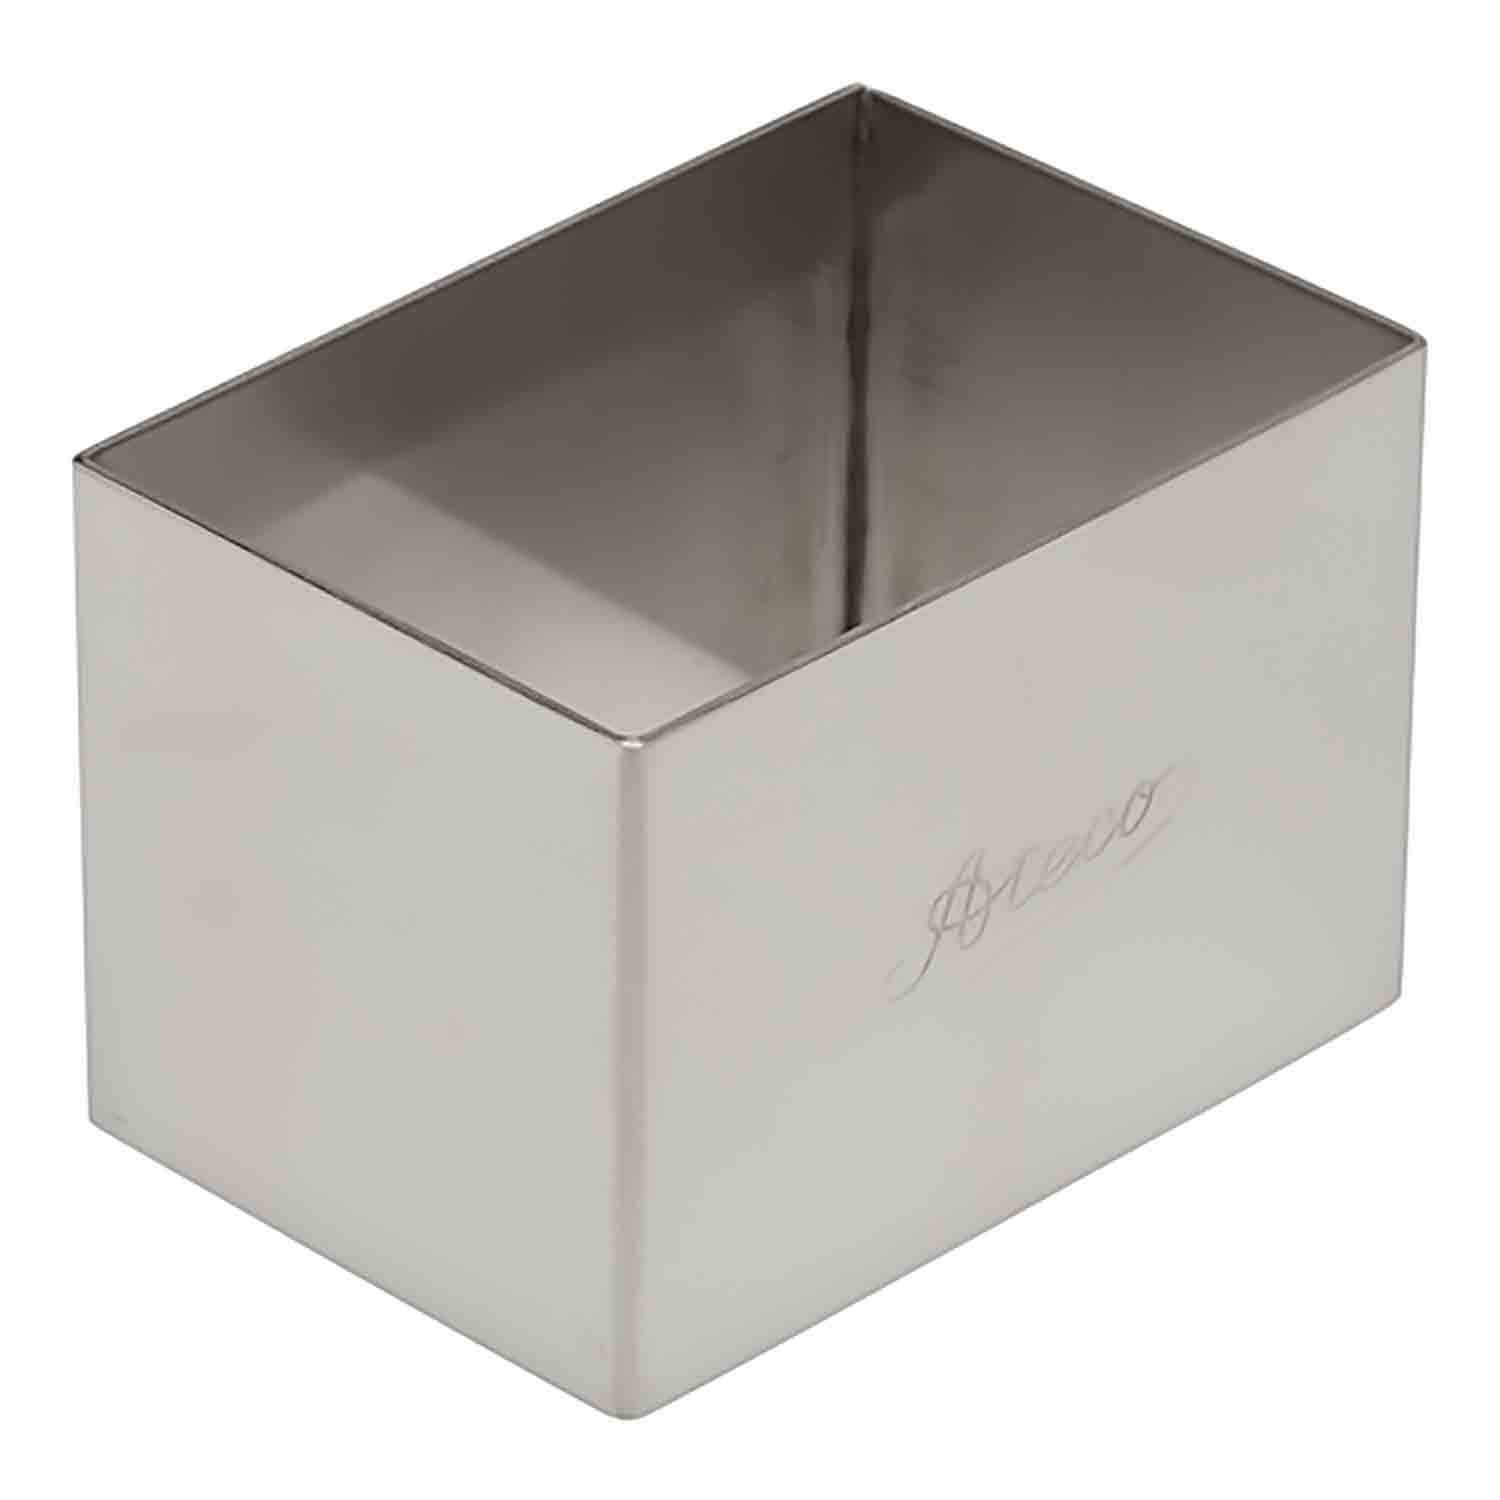 Stainless Steel Rectangle Cookie Cutter